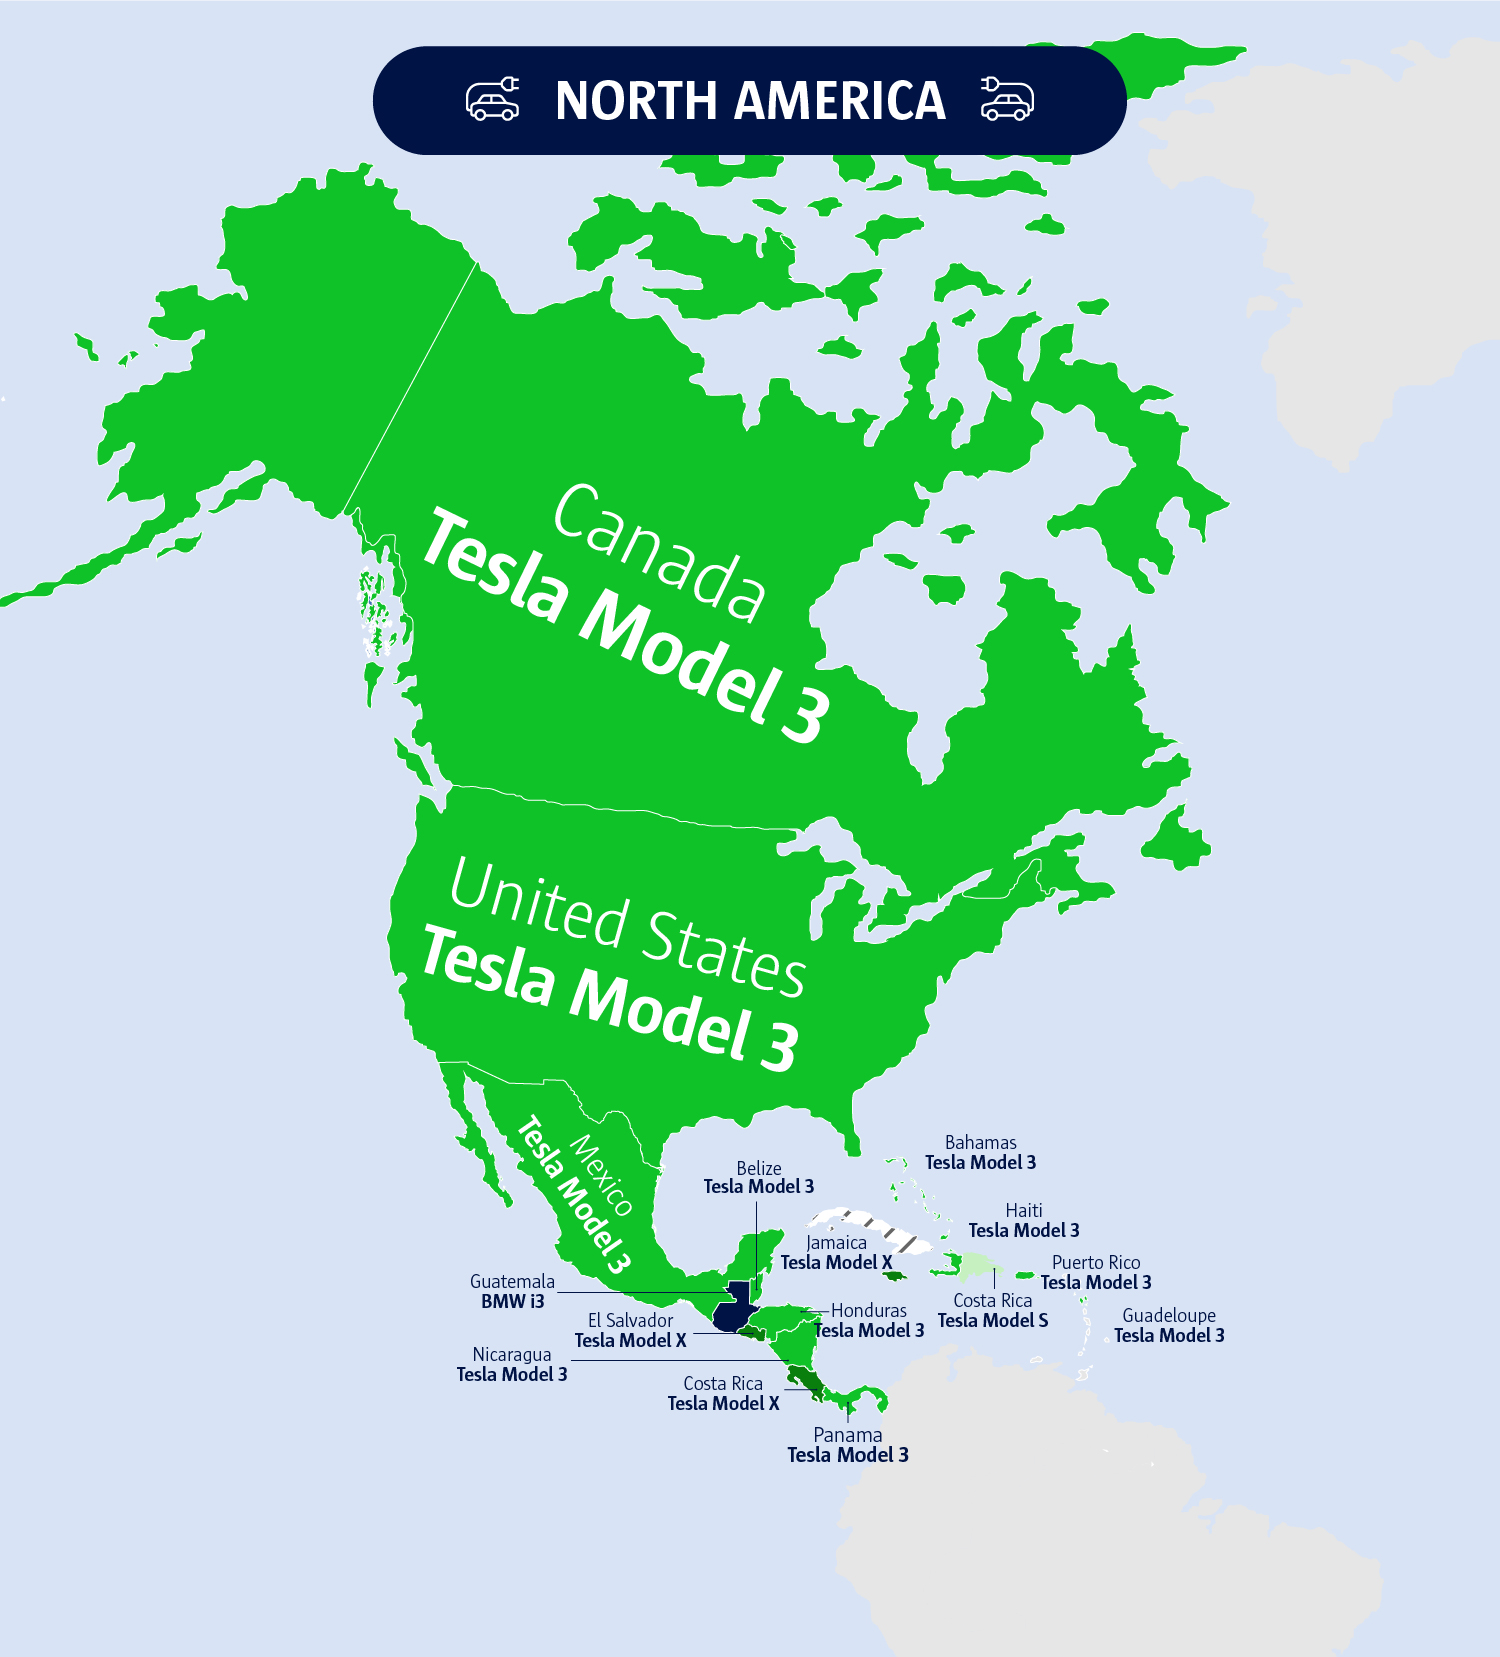 An image to show North America's electric vehicles.